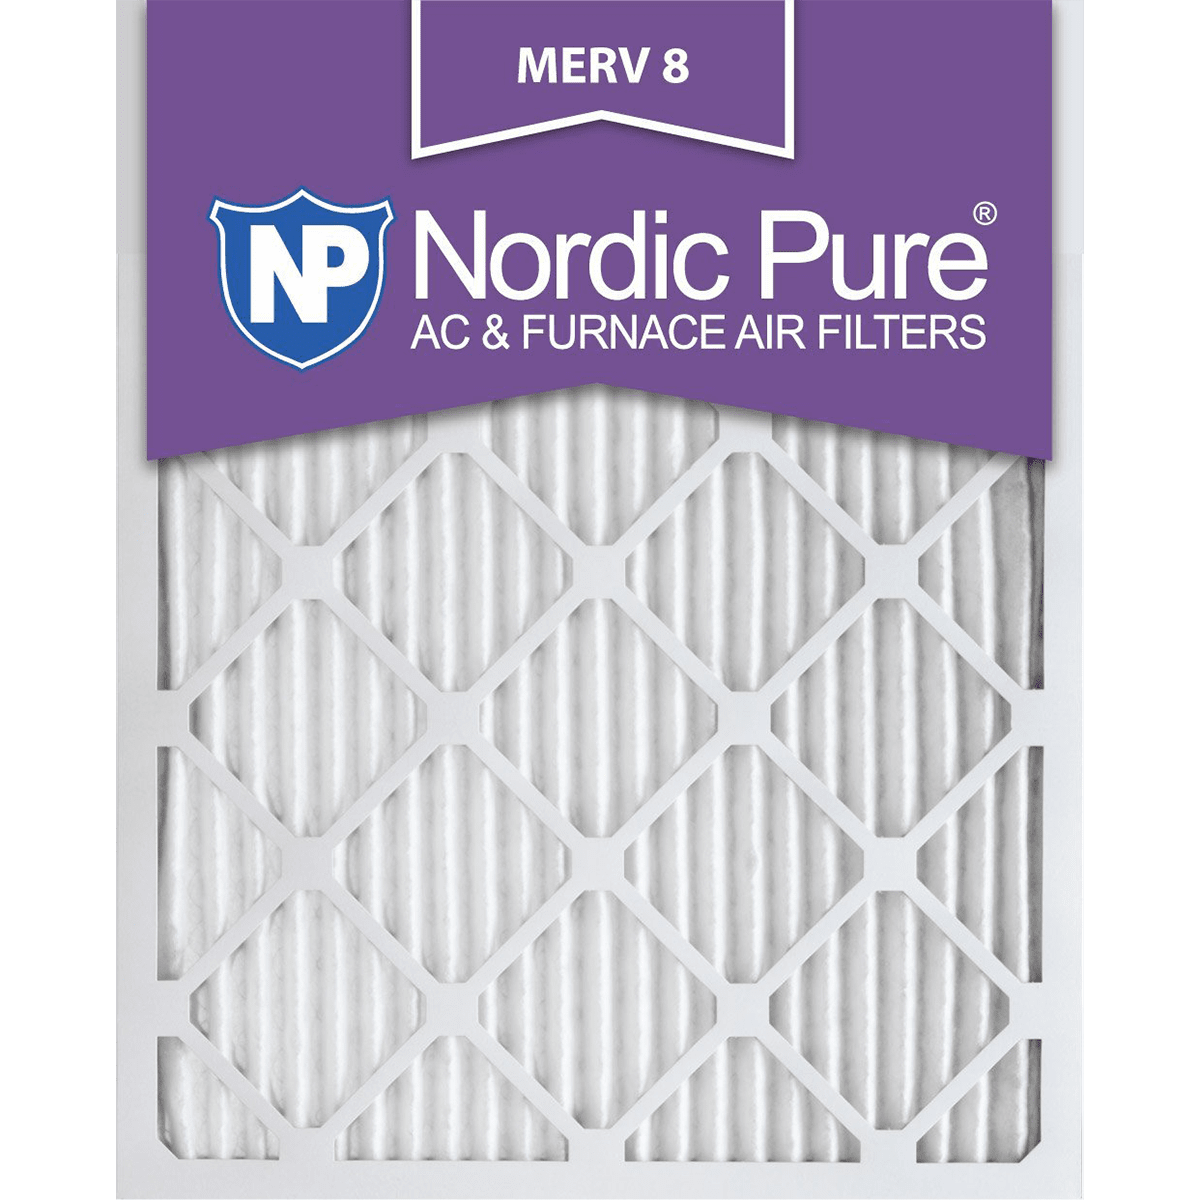 Nordic Pure MERV 8 1-in. Pleated Furnace Filters (6 Pack) no6650